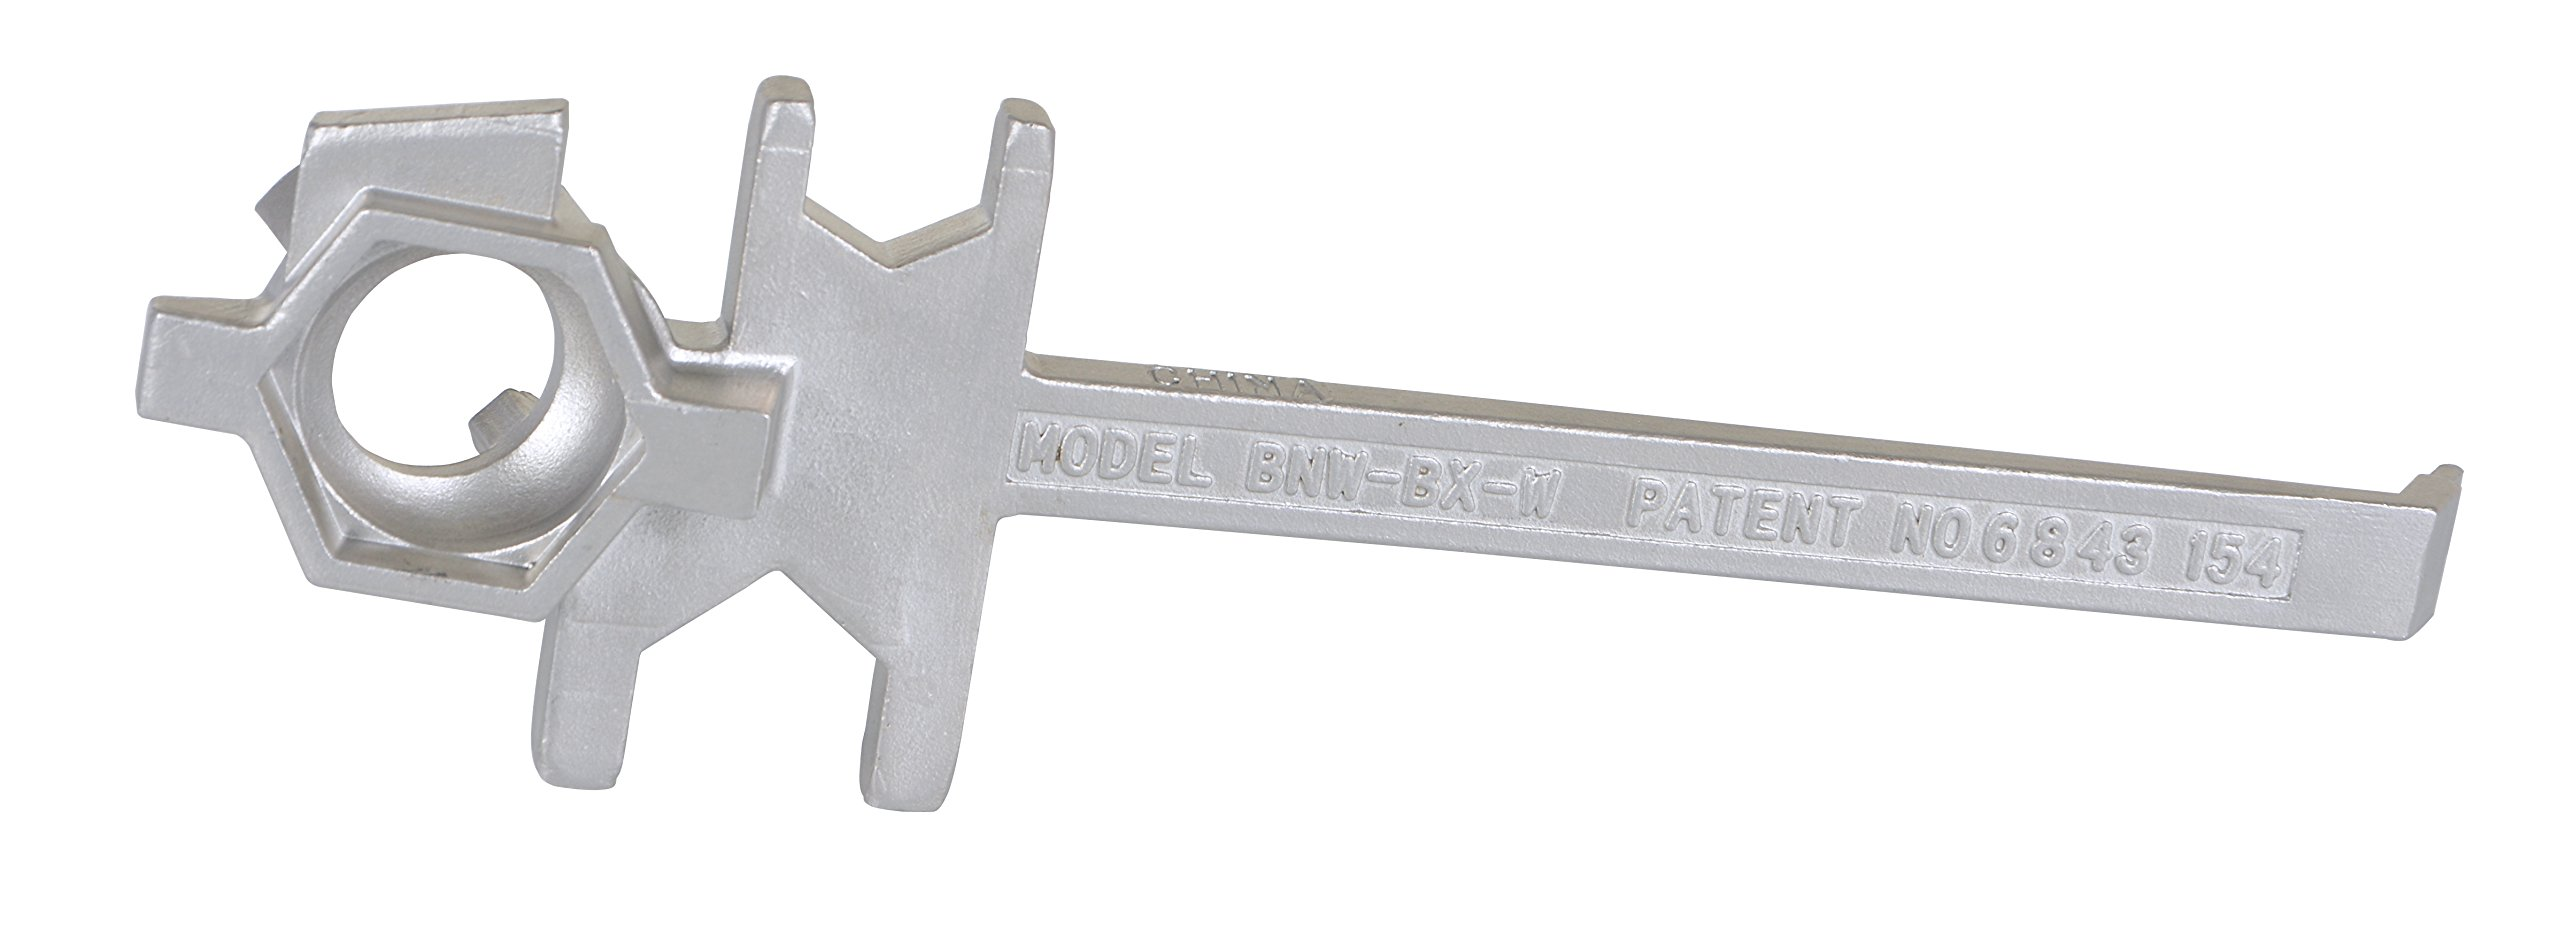 Vestil BNW-SS-W Stainless Steel Bung Nut Wrench, 2009 FDA Food Code Requirements for Non Food-Contact Equipment, 12'' Length by Vestil (Image #2)